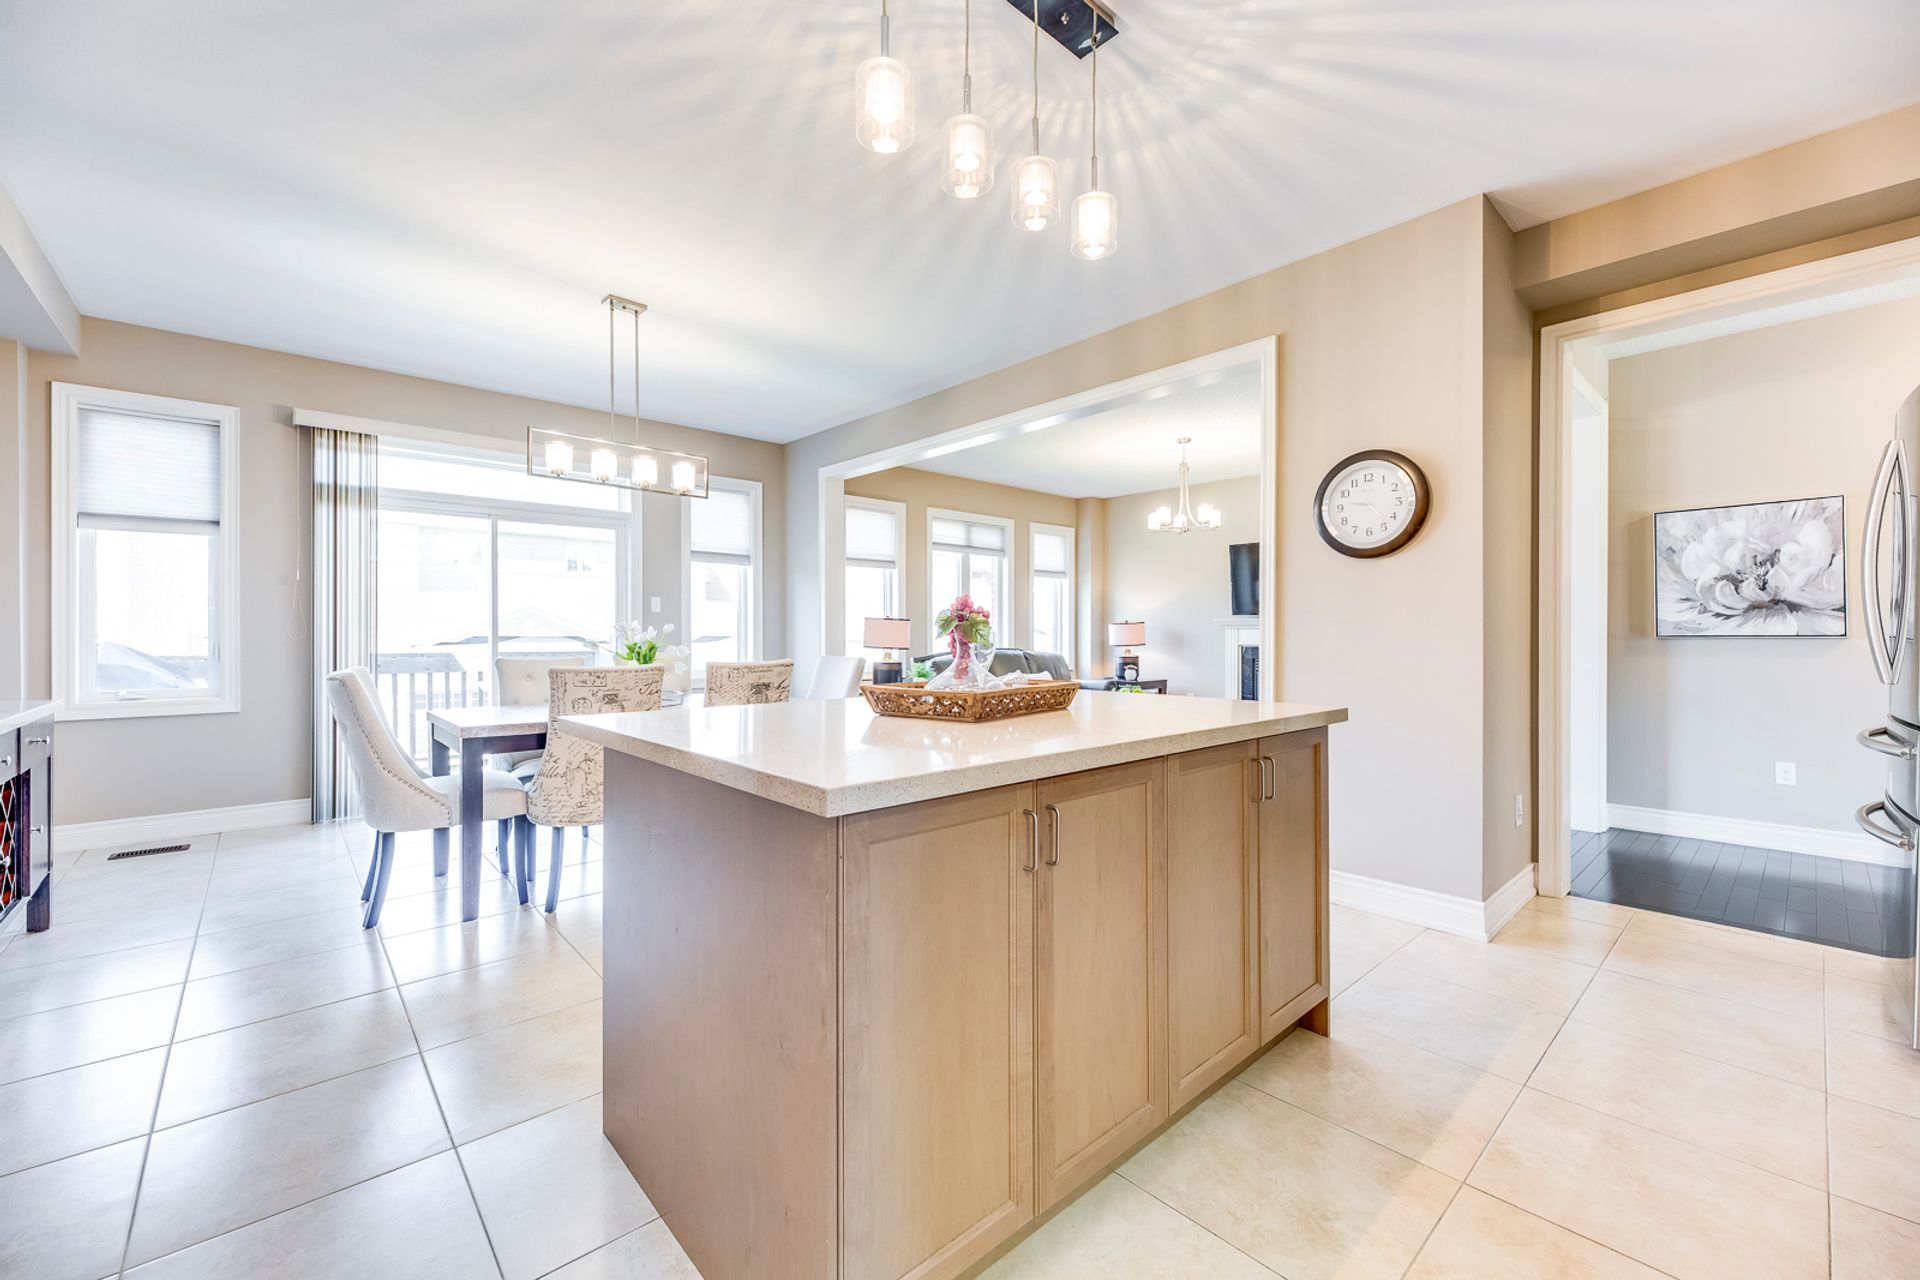 mls-26 at 5480 Meadowcrest Avenue, Churchill Meadows, Mississauga